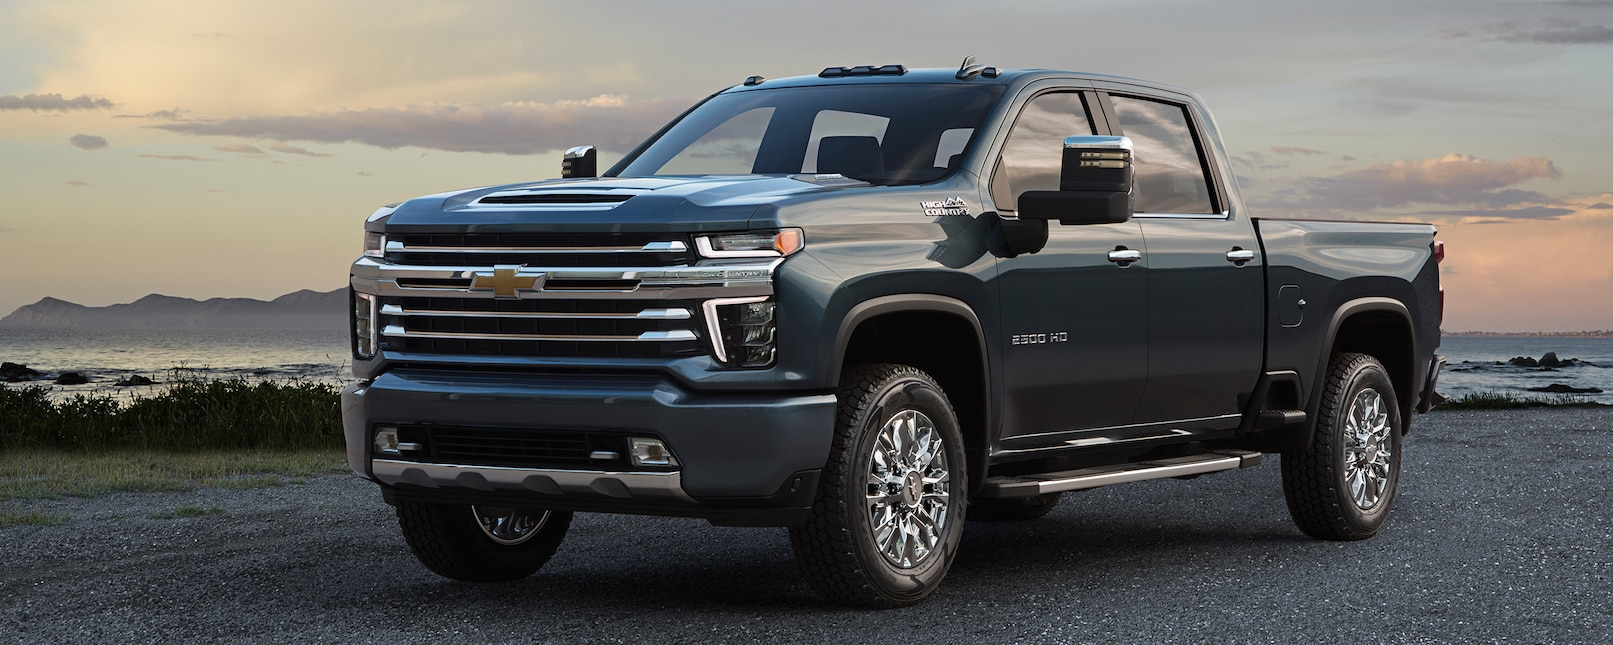 Upcoming Chevrolet Vehicles Near Escondido Ca Weseloh